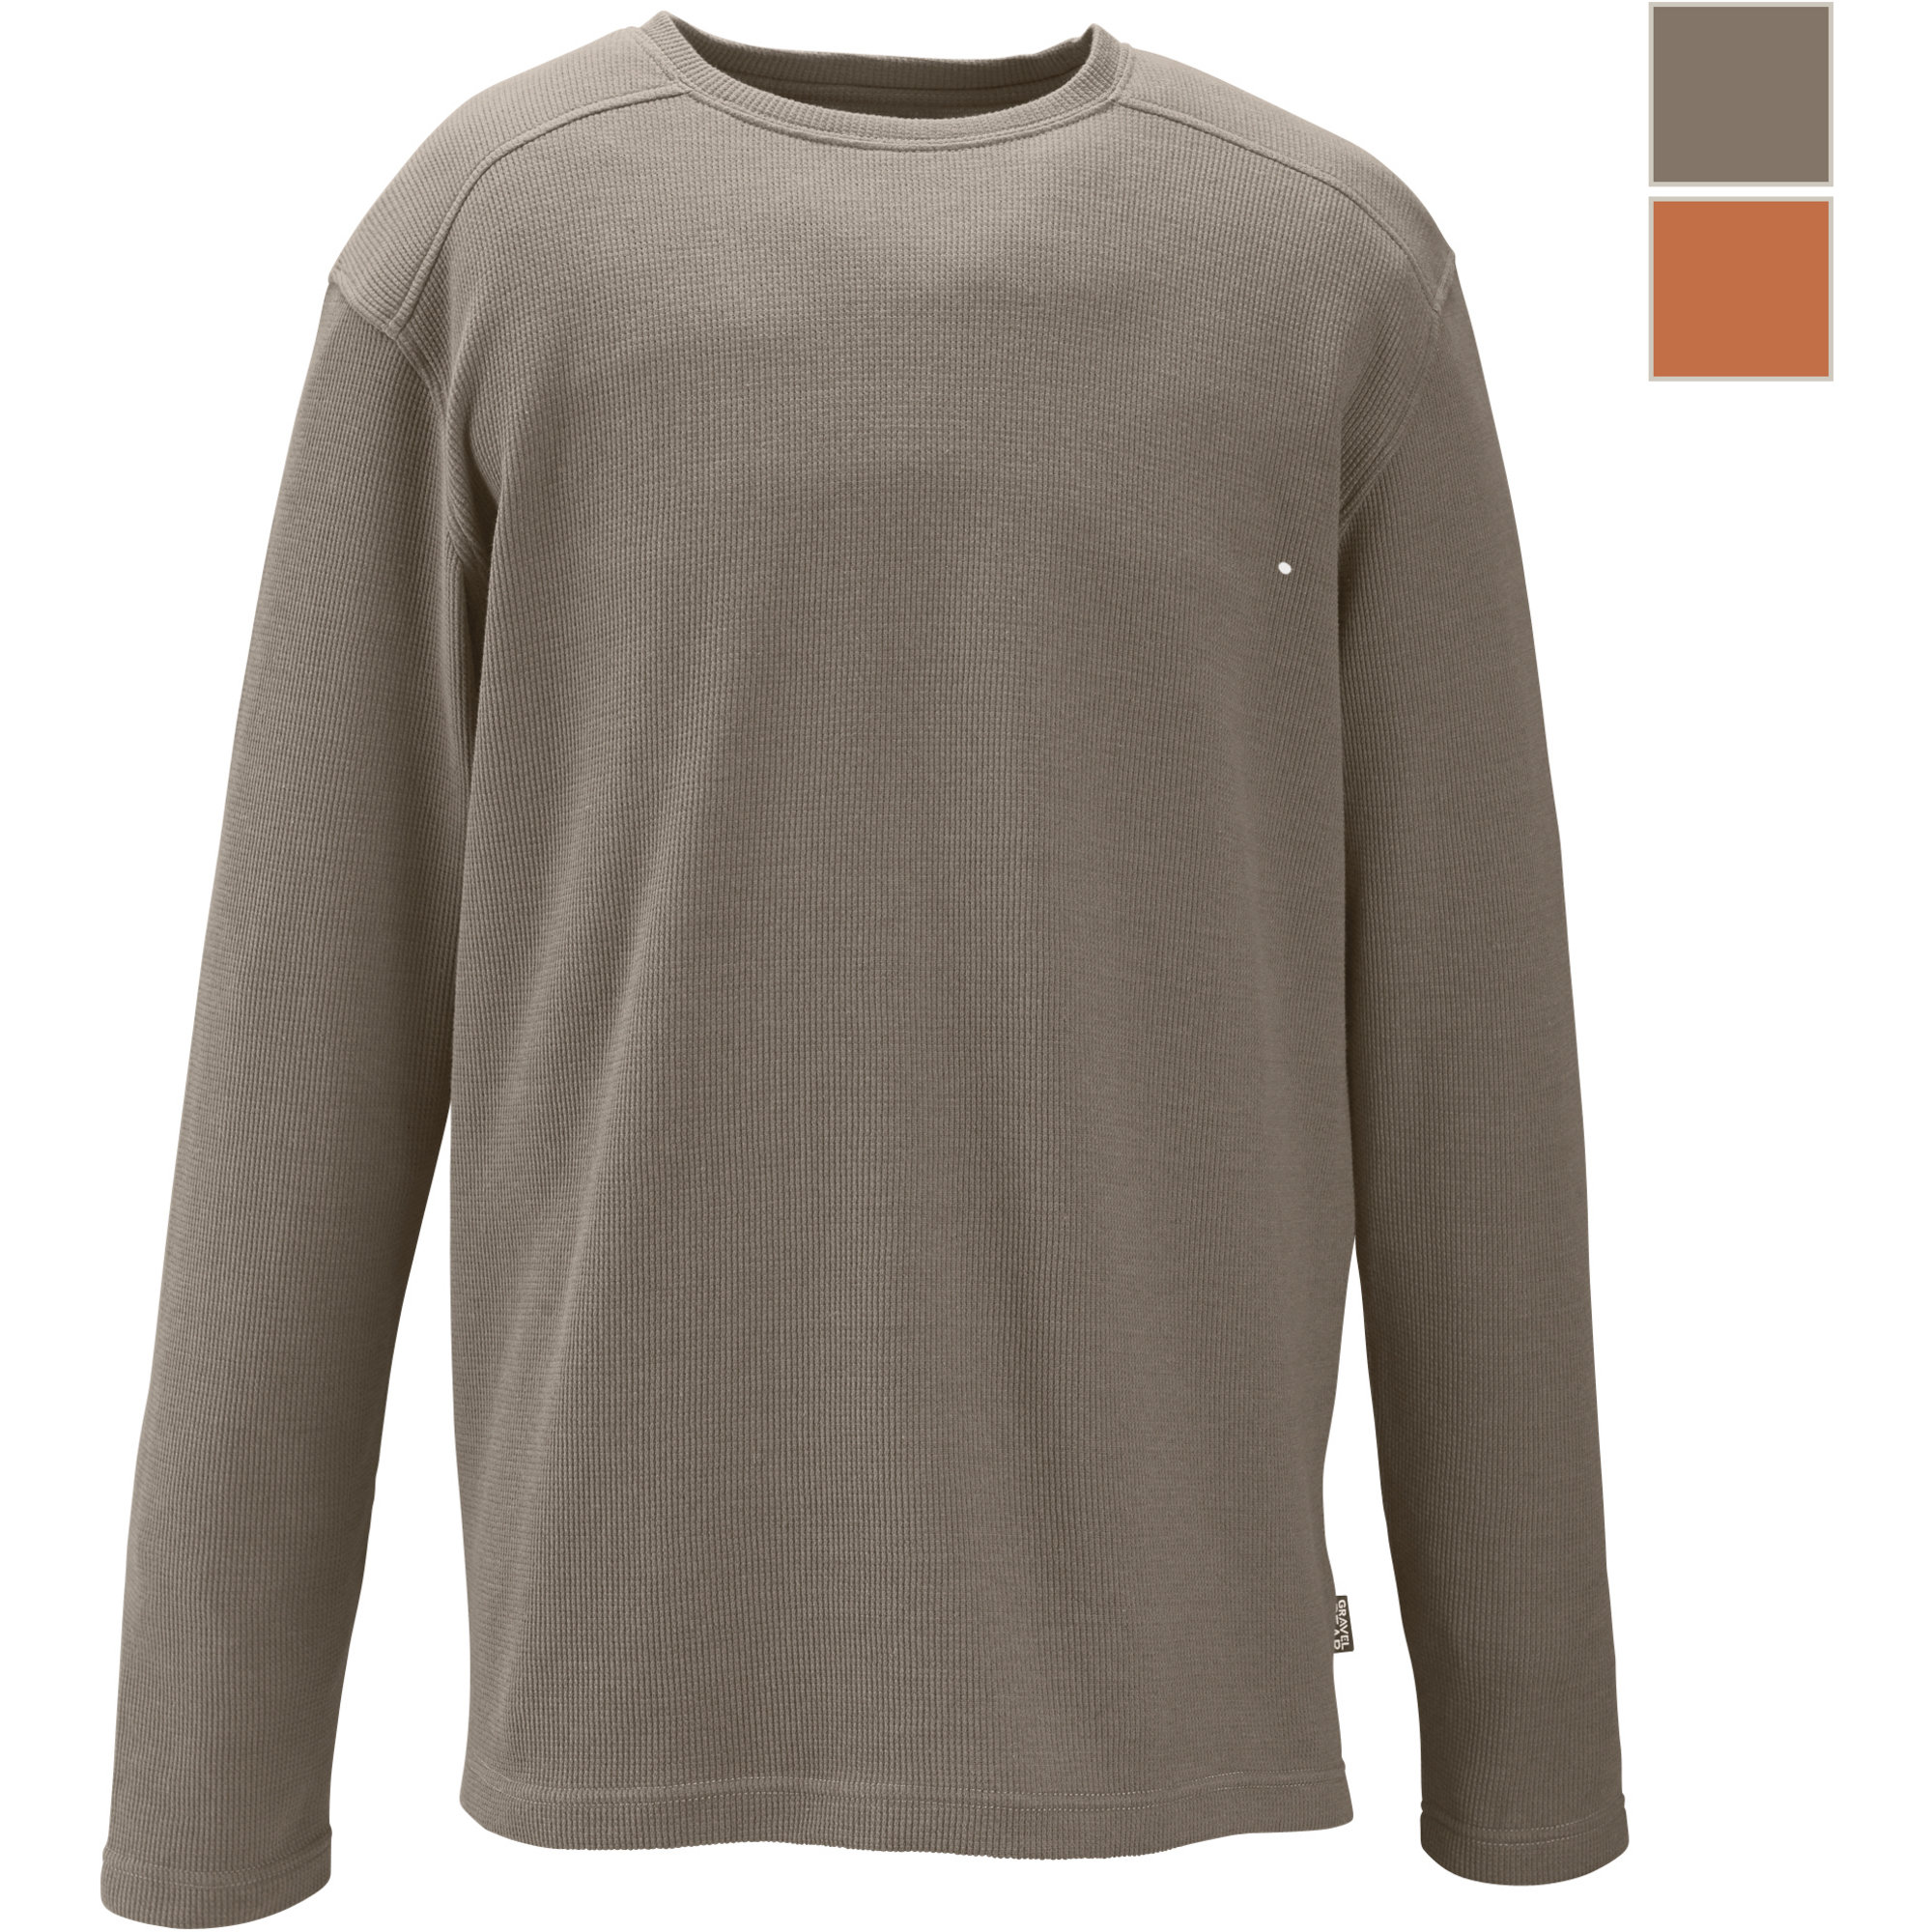 Free shipping gravel gear thermal waffle long sleeve t Thermal t shirt long sleeve